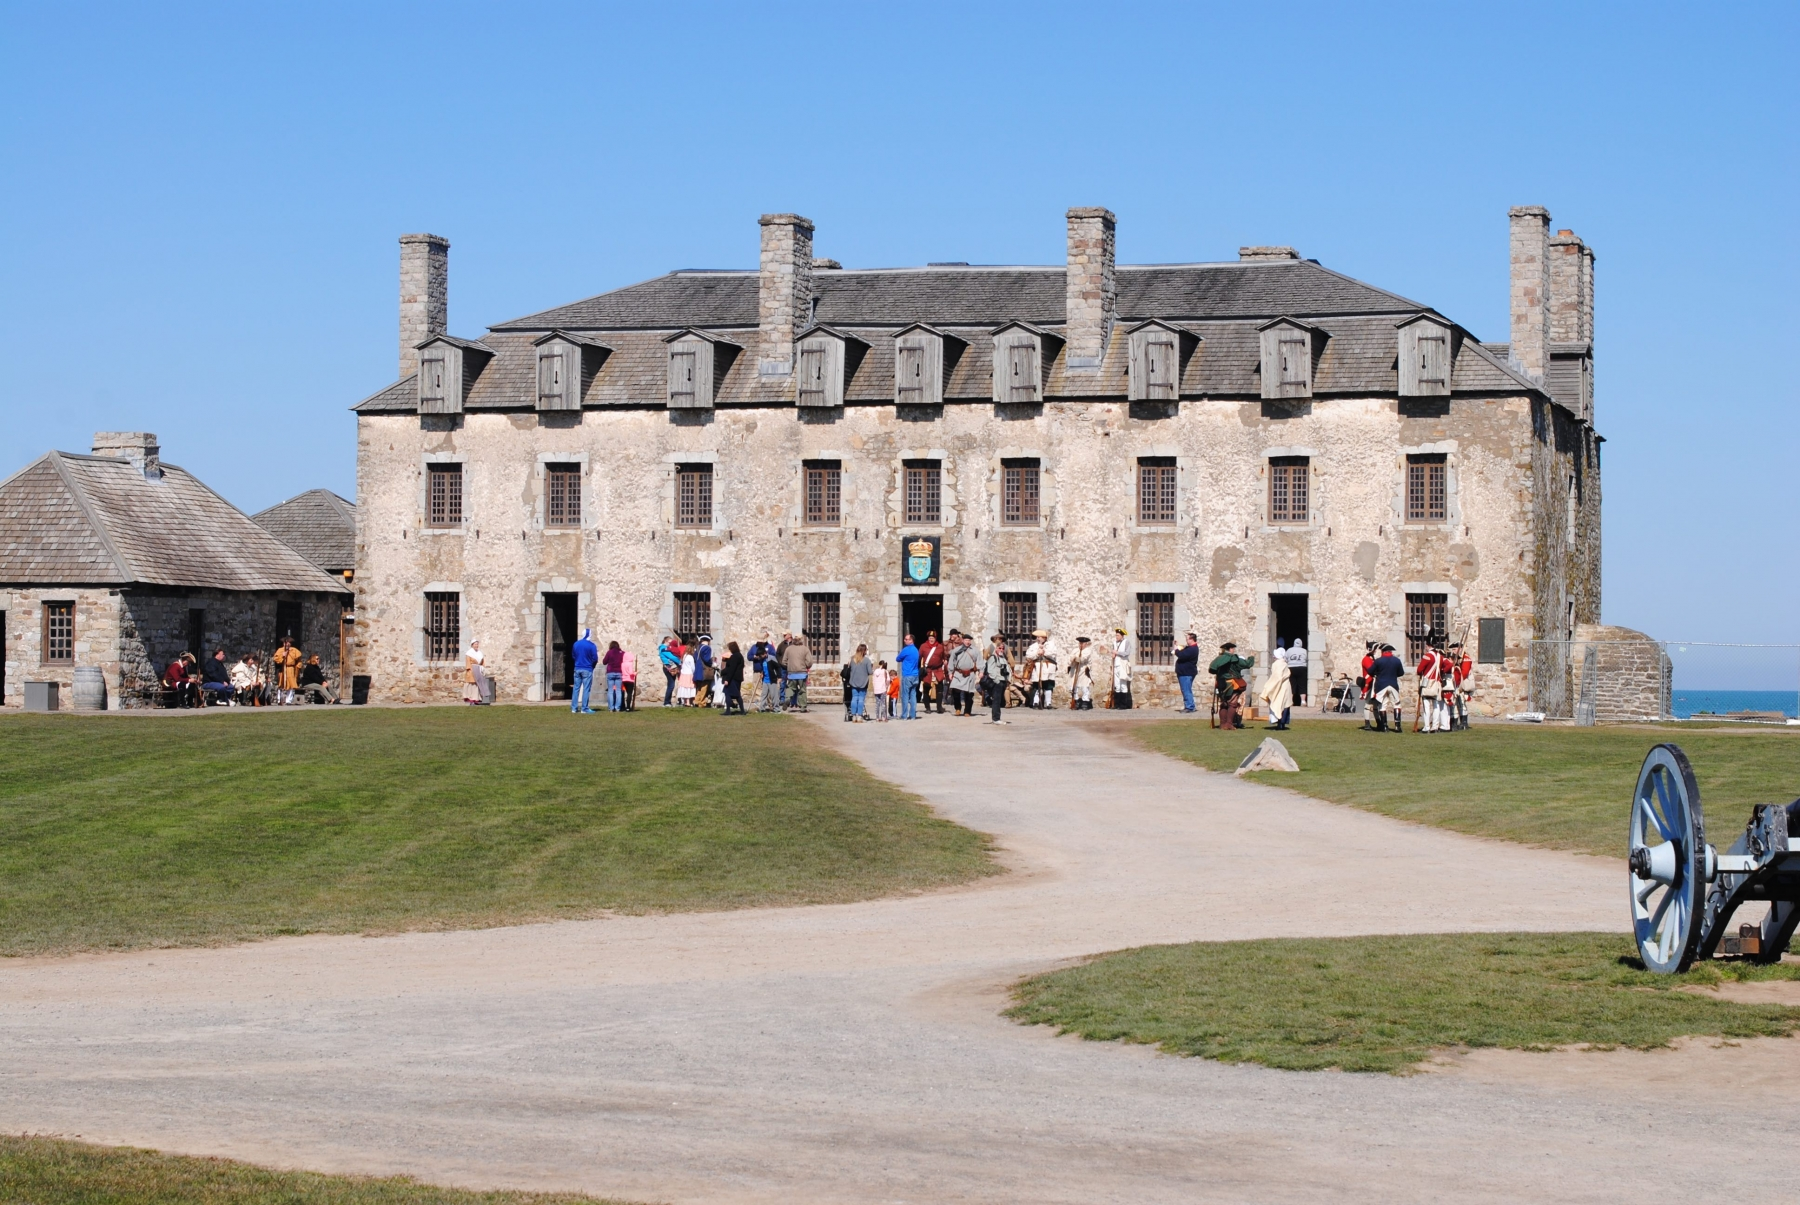 Reenactors and visitors mingle in front of the French Castle at Old Fort Niagara on Patriots Day Weekend. (photo C. Clark)